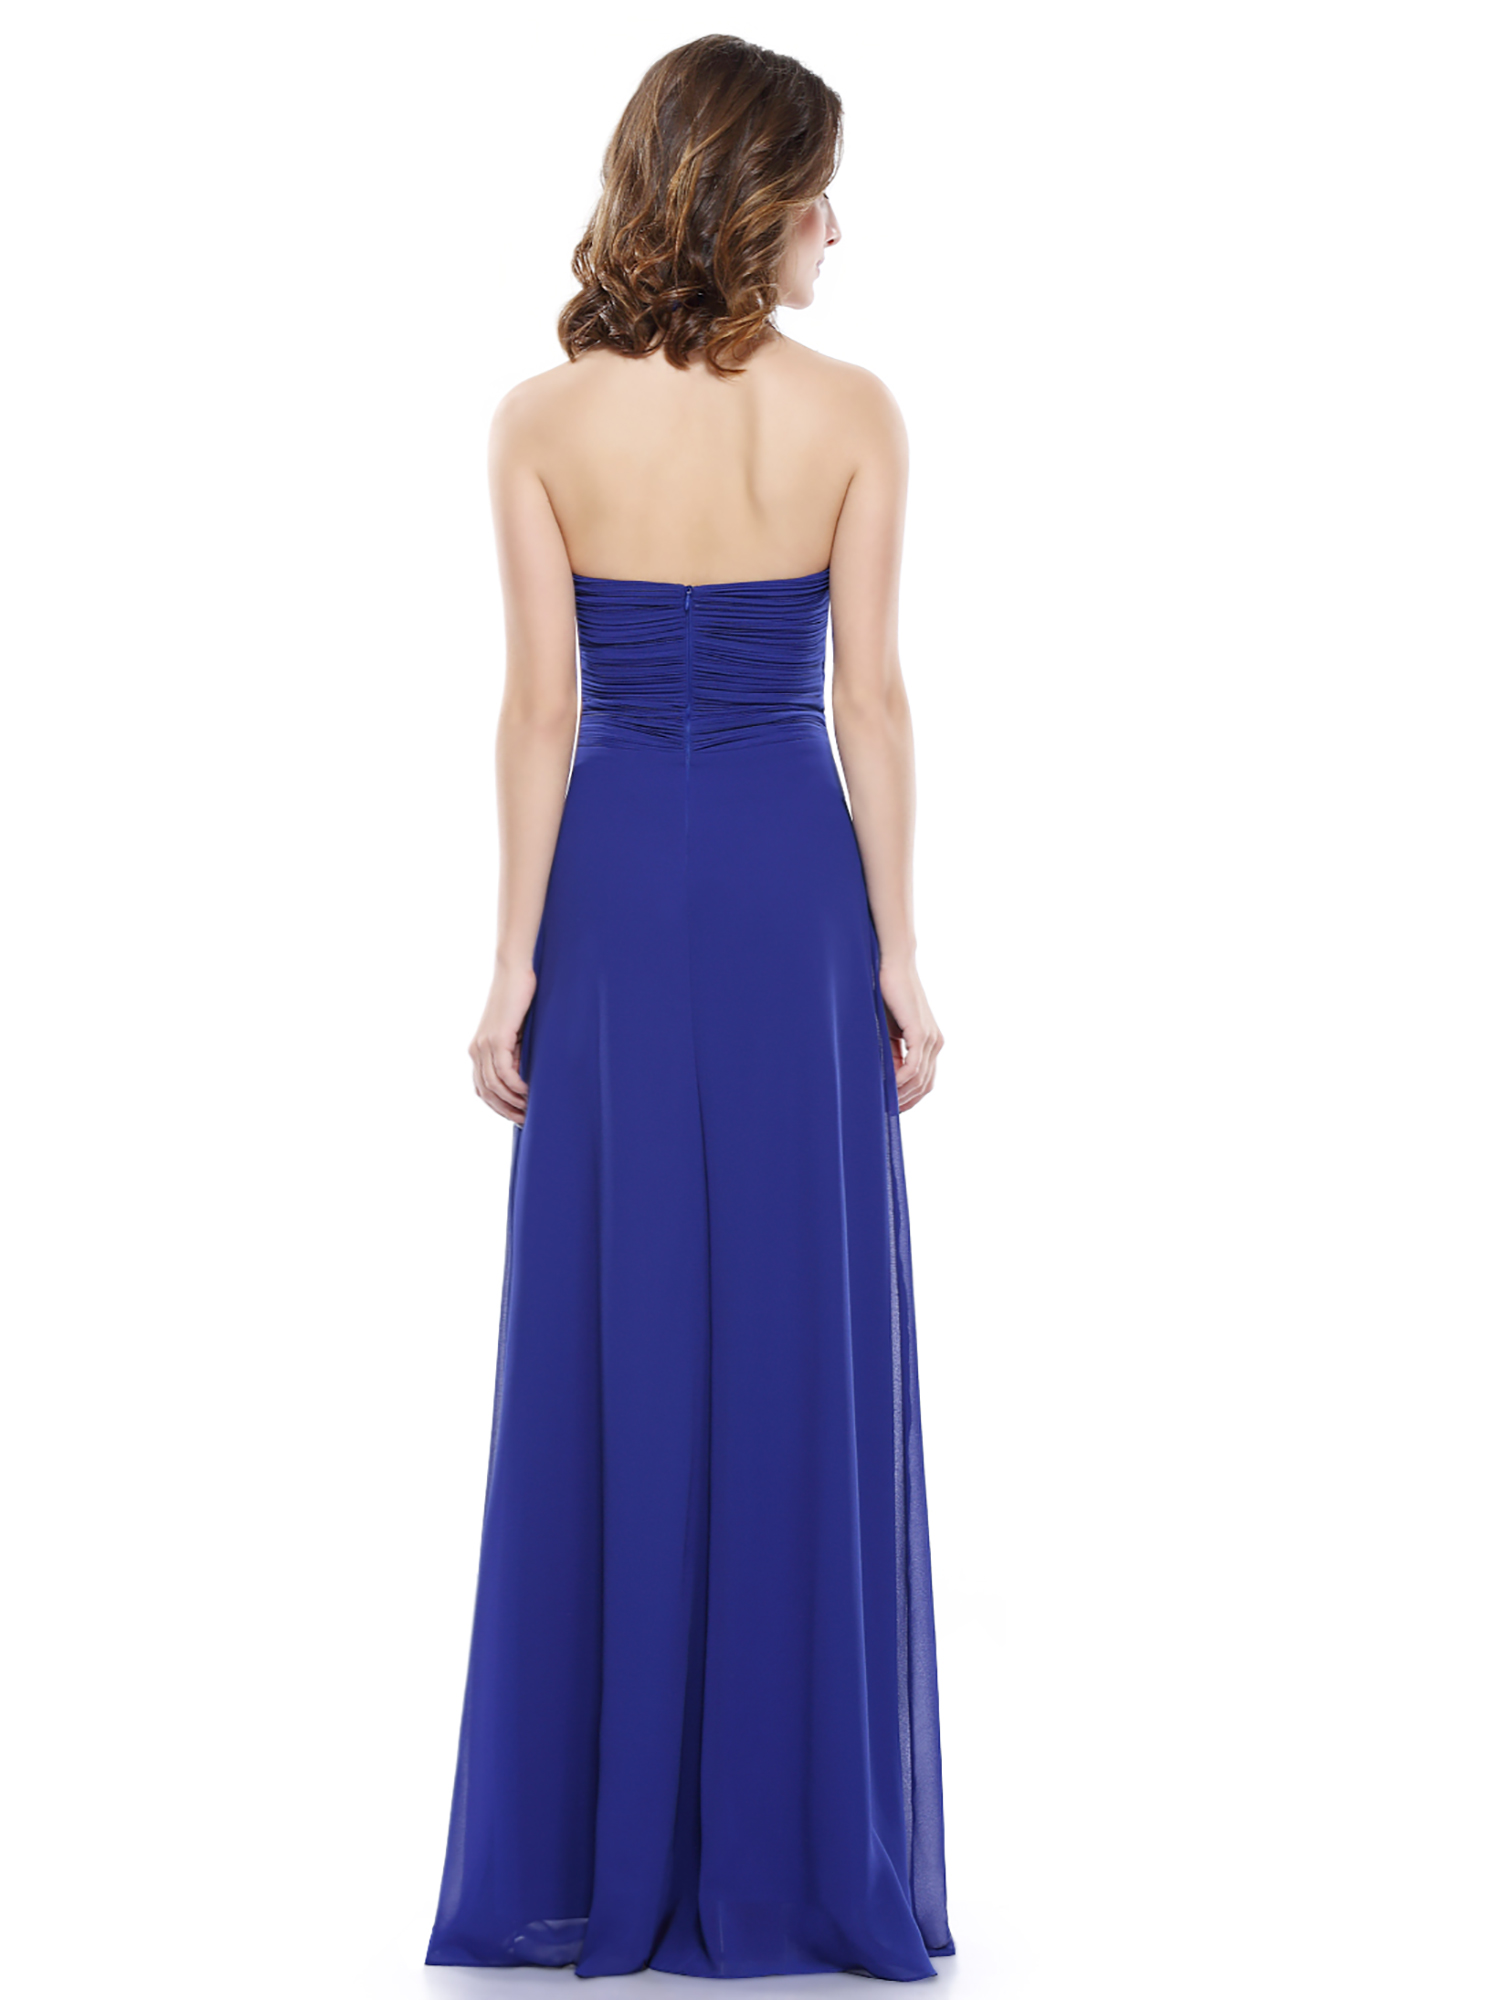 Womens Maxi Halter Bridesmaid Dress Evening Wedding Prom Party Dresses 08487  eBay